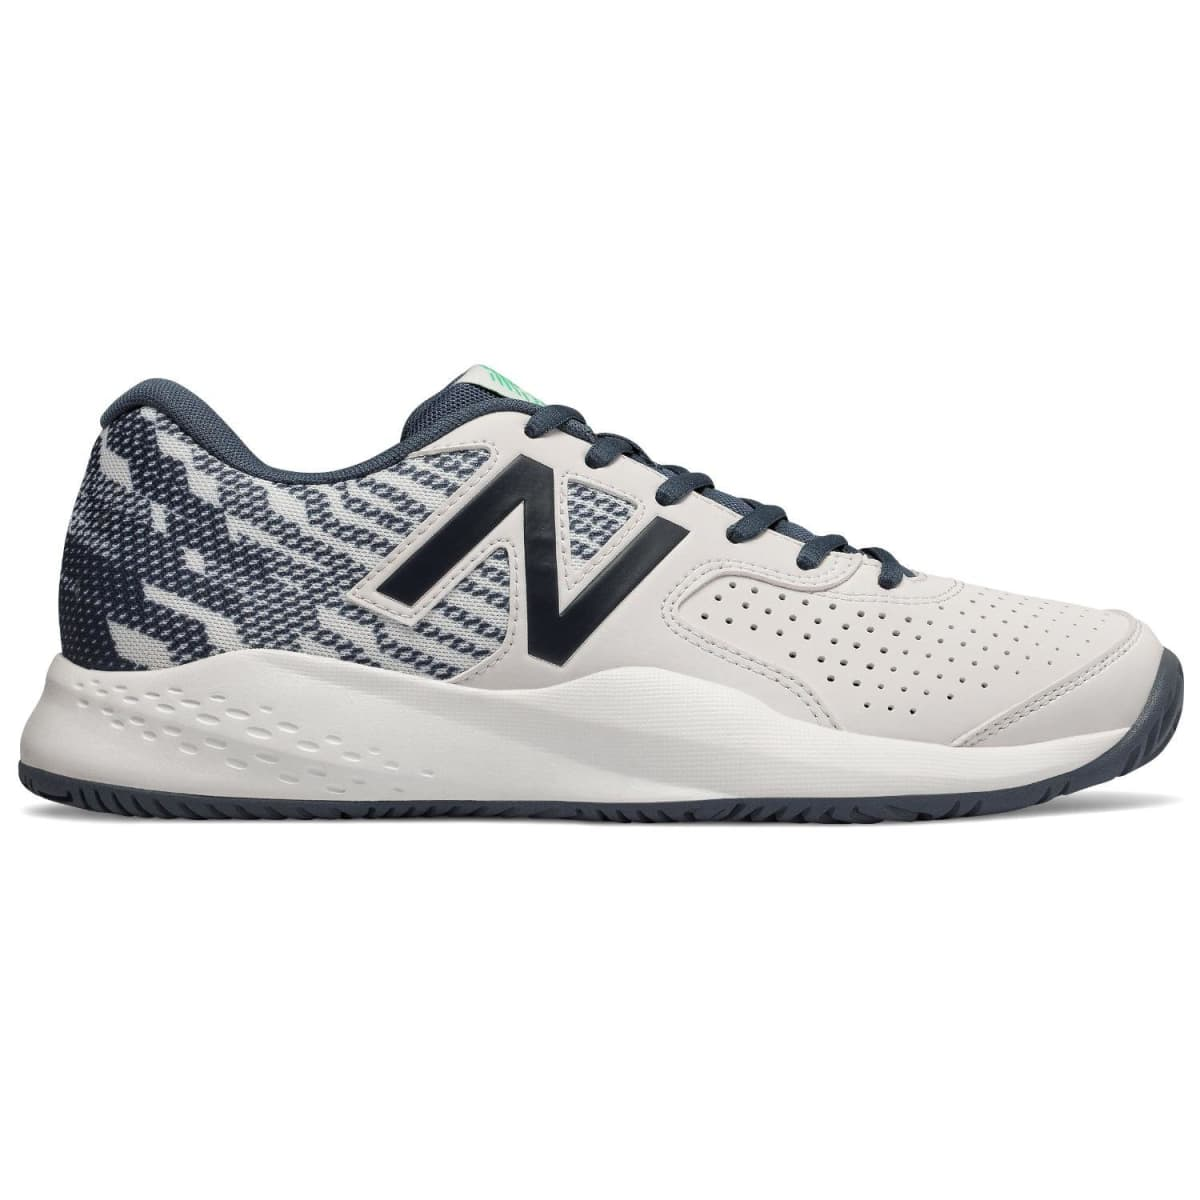 e6b8baf72ec New Balance 696 V3 Tennis Shoes